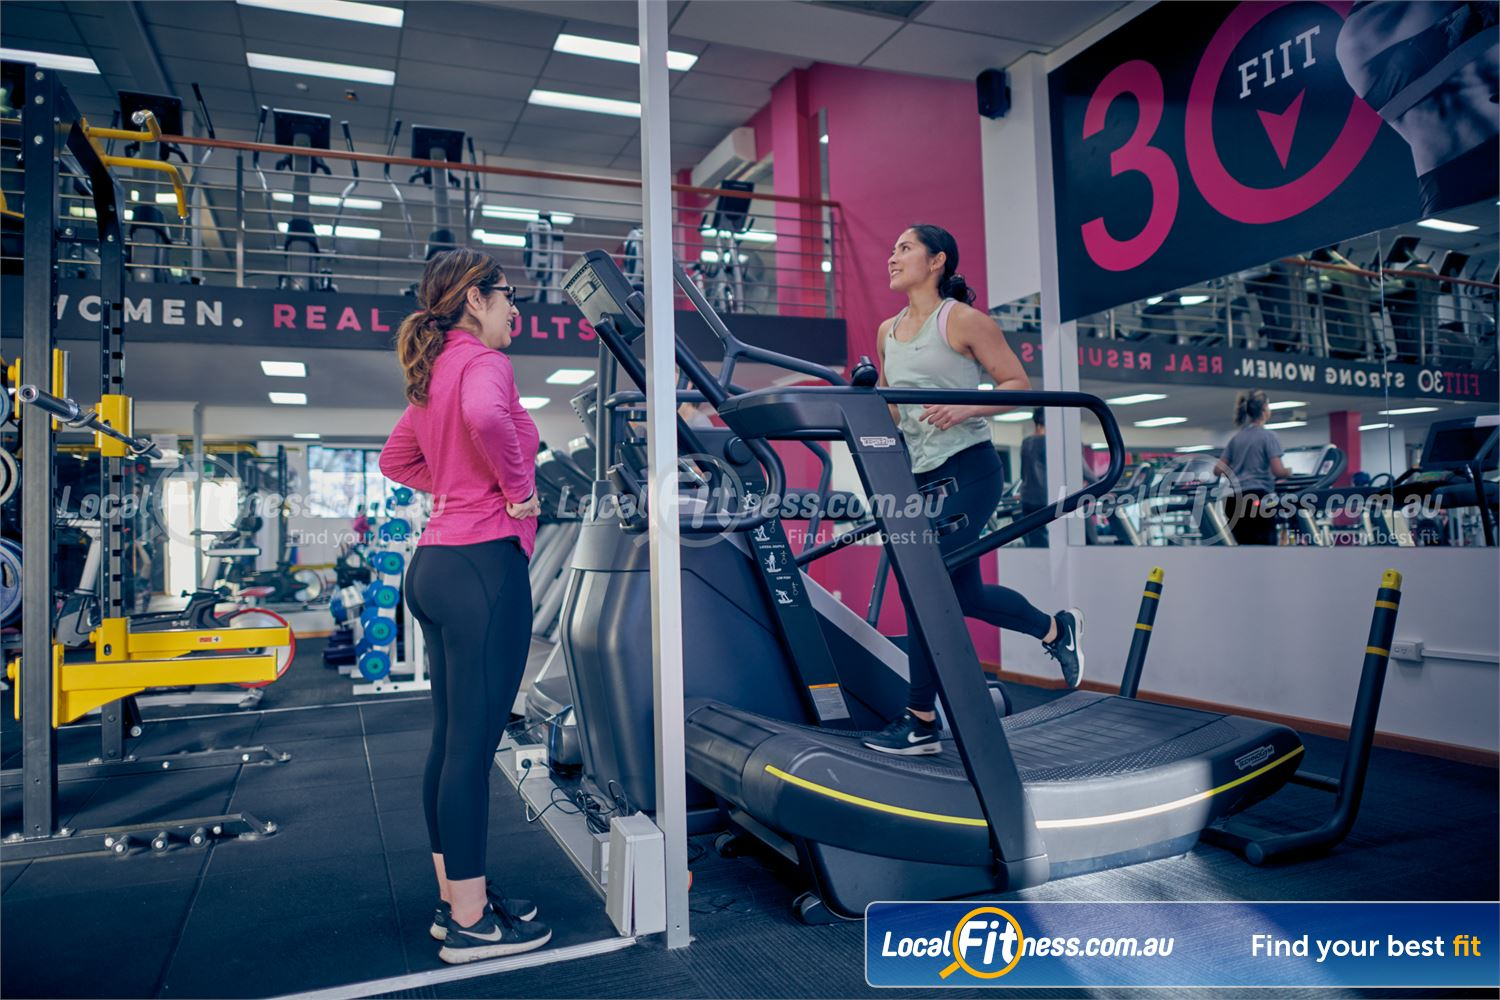 Fernwood Fitness Near Fitzroy Get a functional cardio workout with the Technogym Skillmill.